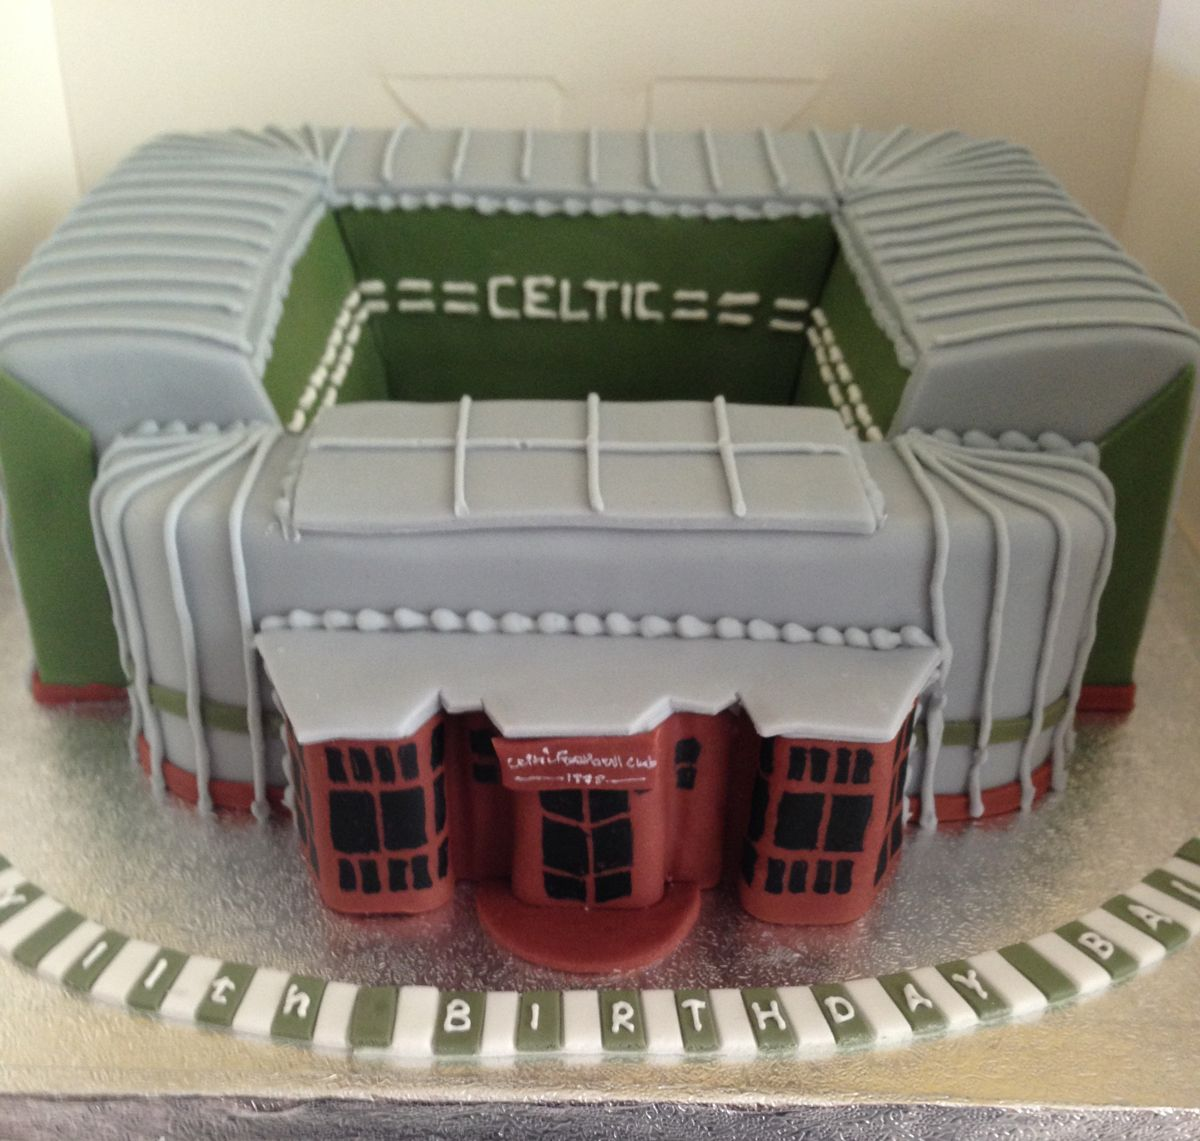 Celtic Football Stadium Cakes by Time for CakeGlasgow